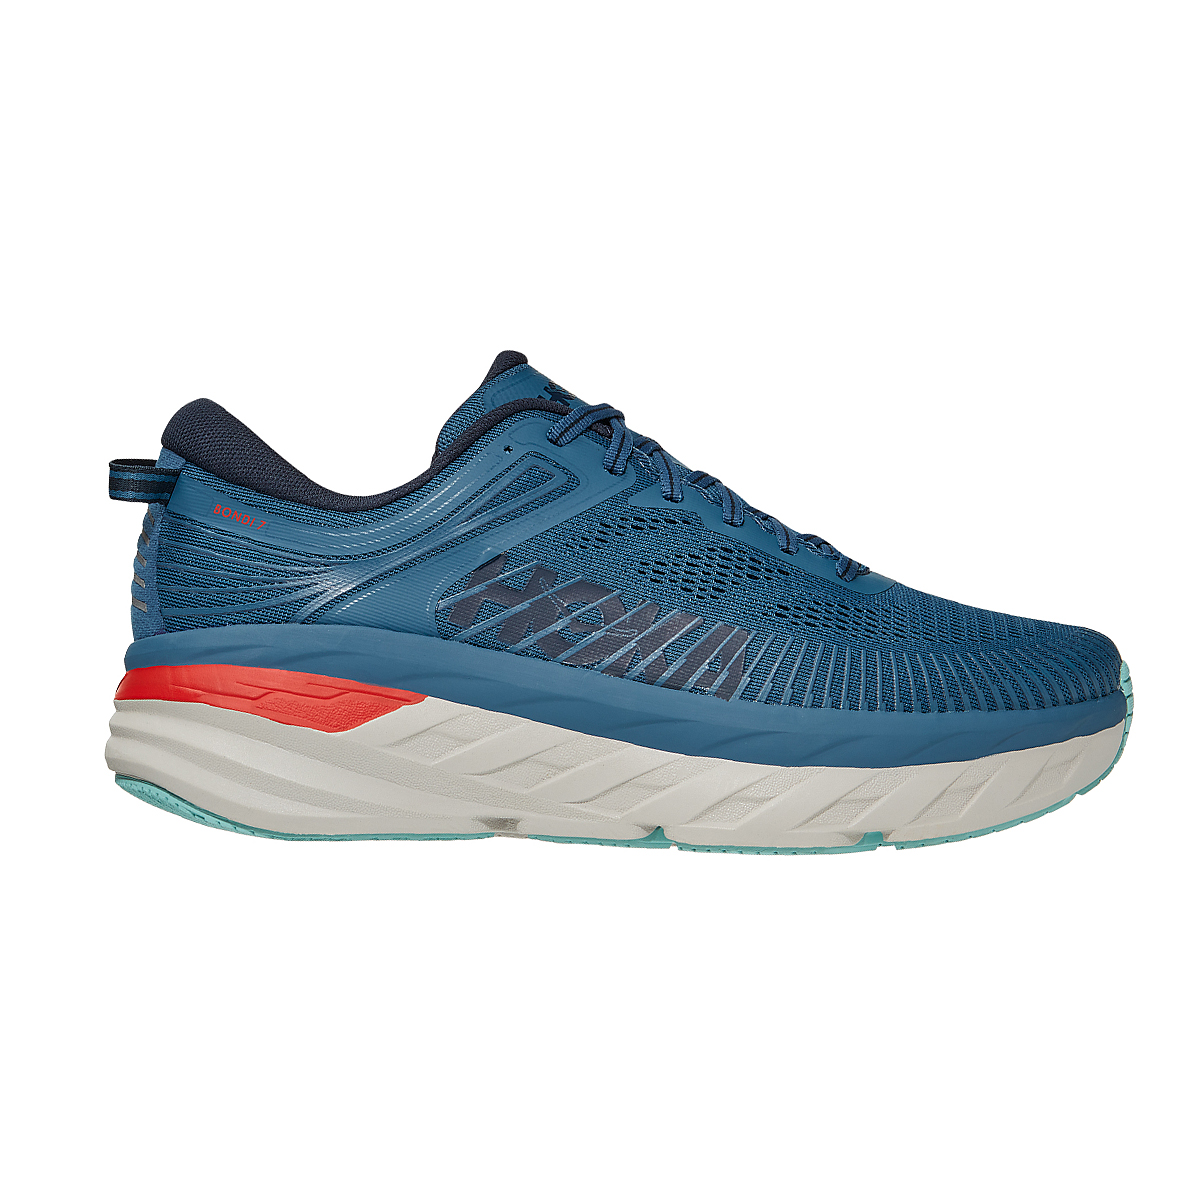 Men's Hoka One One Bondi 7 Running Shoe - Color: Real Teal/Outer Space - Size: 7 - Width: Regular, Real Teal/Outer Space, large, image 1